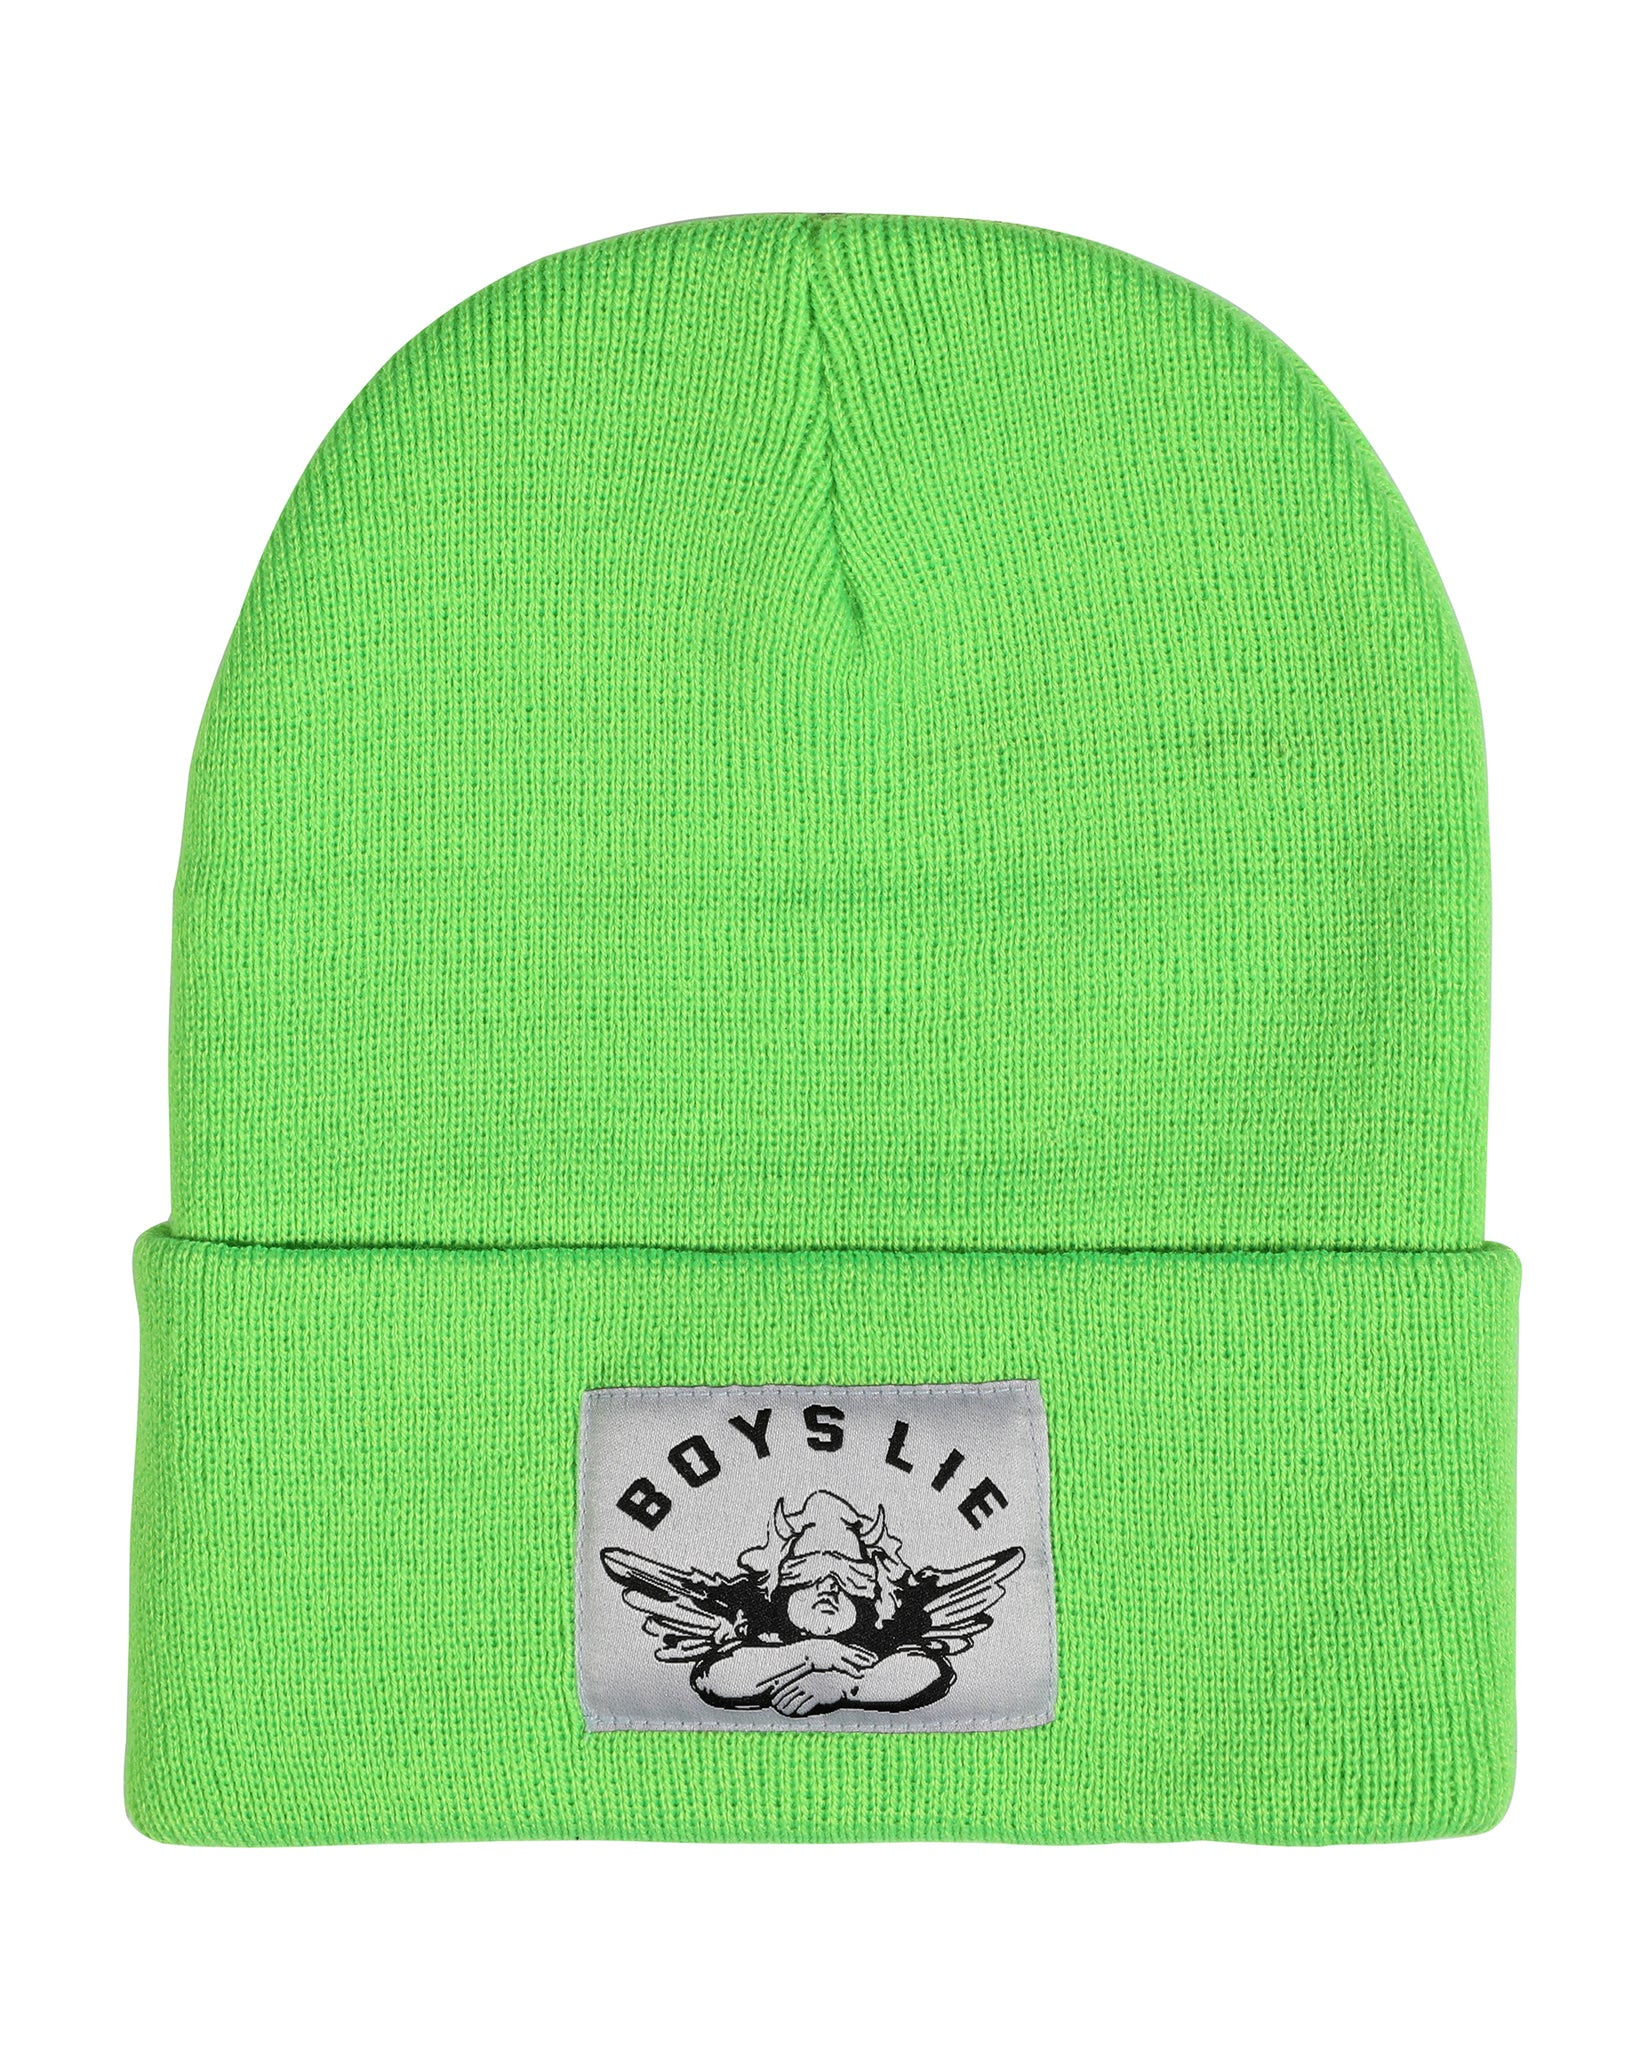 BOYS LIE NEON GREEN BEANIE